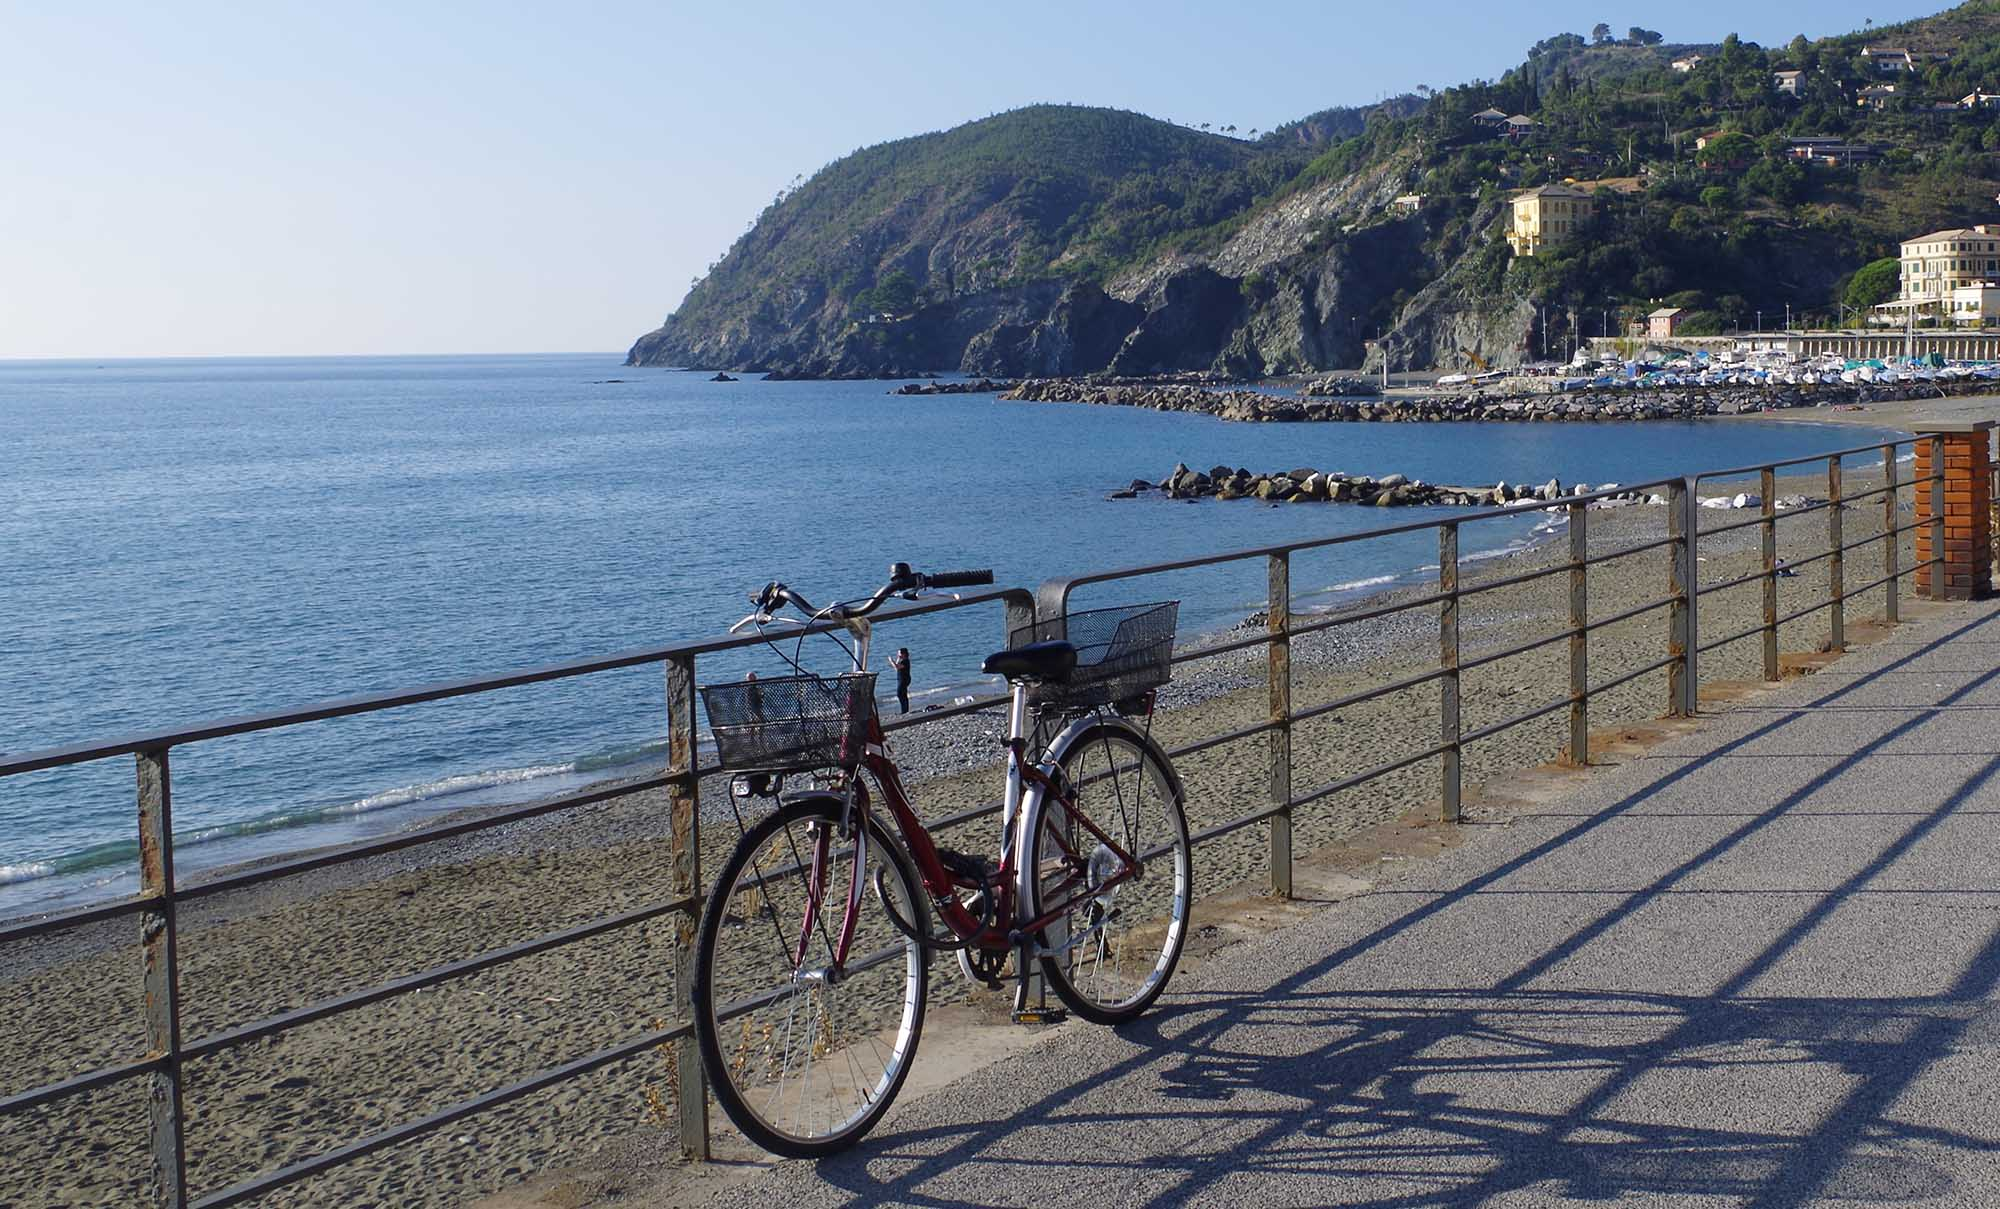 The Best Beaches In Italy? That's What They Say About Liguria